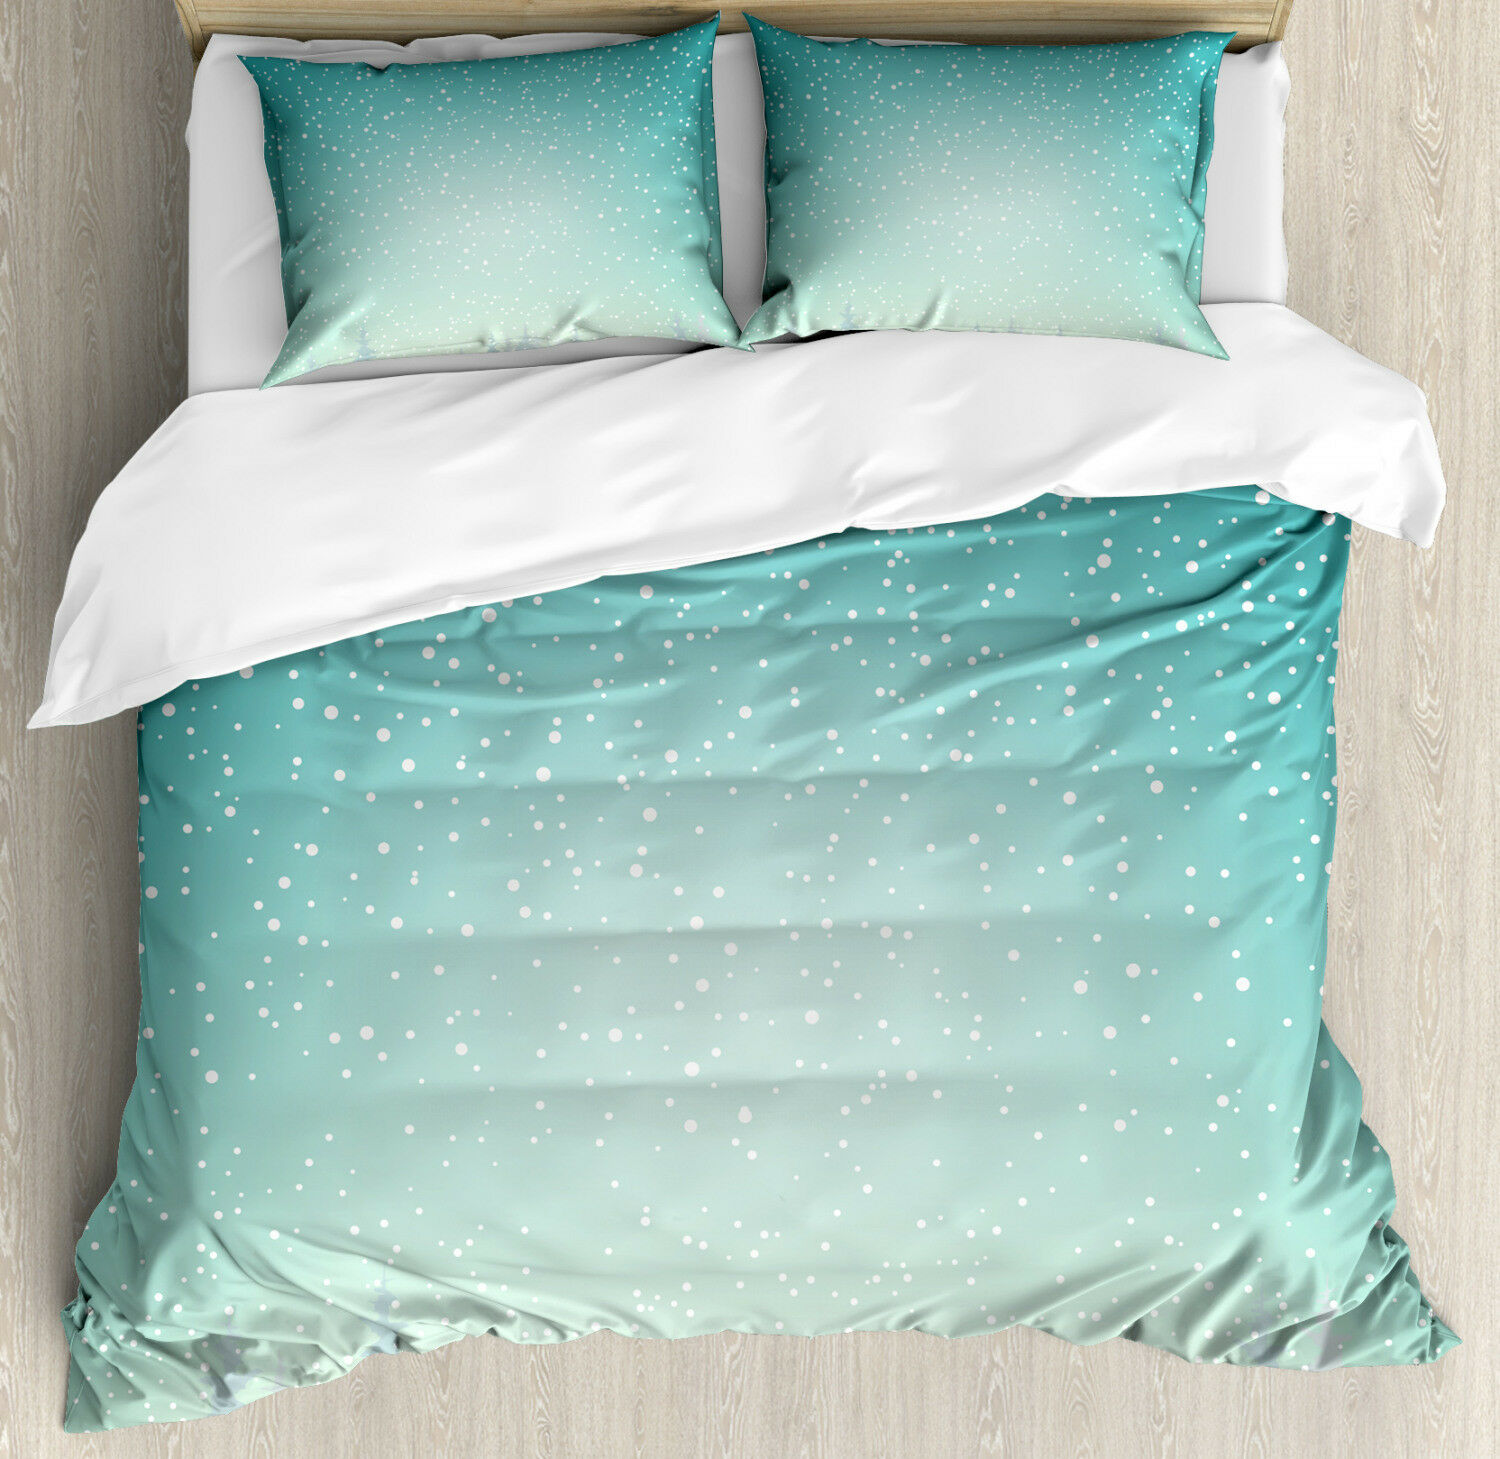 Winter Duvet Cover Set with Pillow Shams Spruce Forest Snow Woods Print